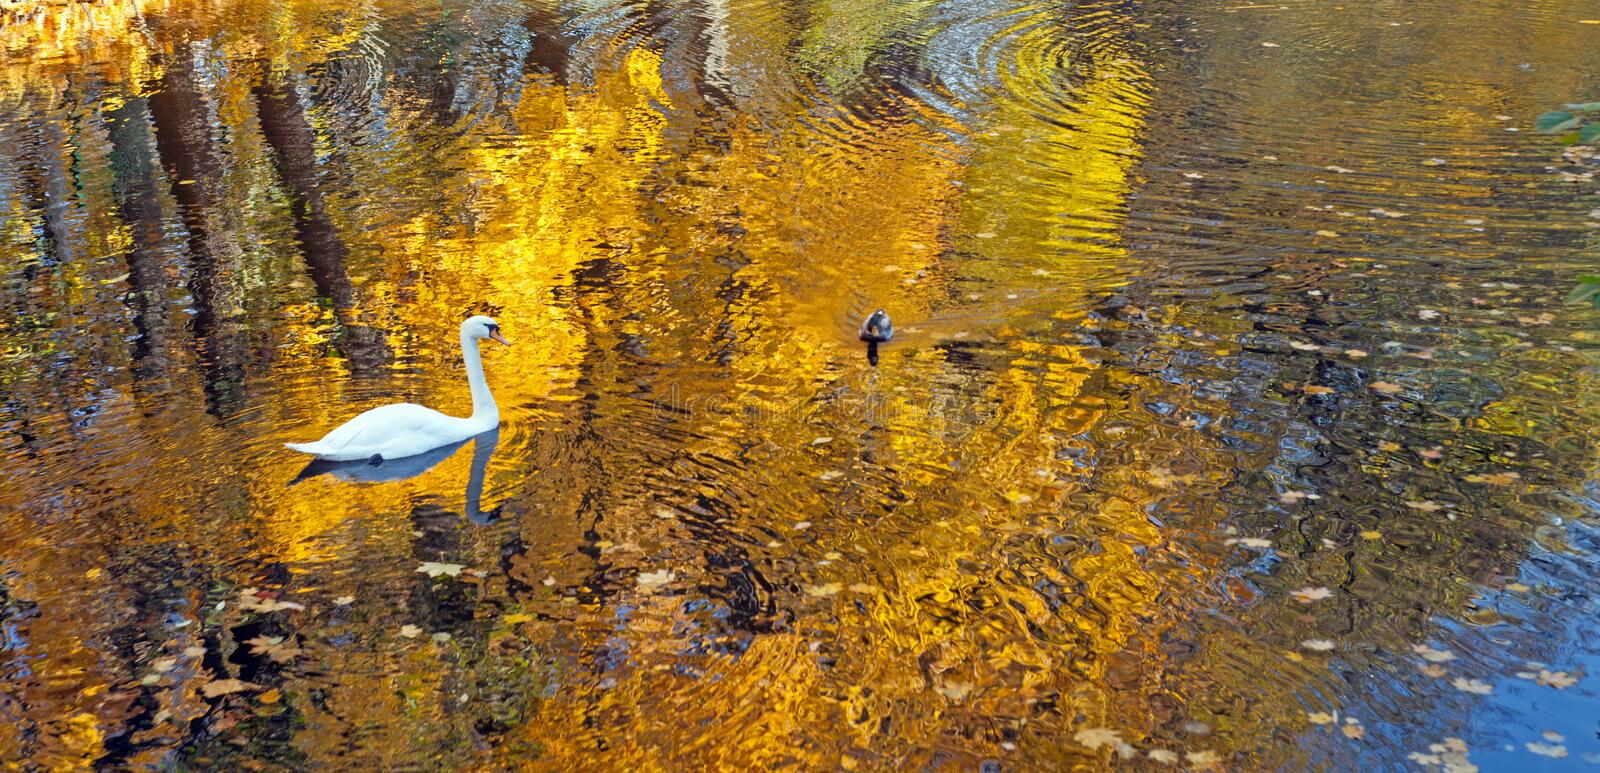 Swan and duck floating in the water of the pond in the park with yellow autumn leaves and beautiful reflection of the trees. Fall stock photos